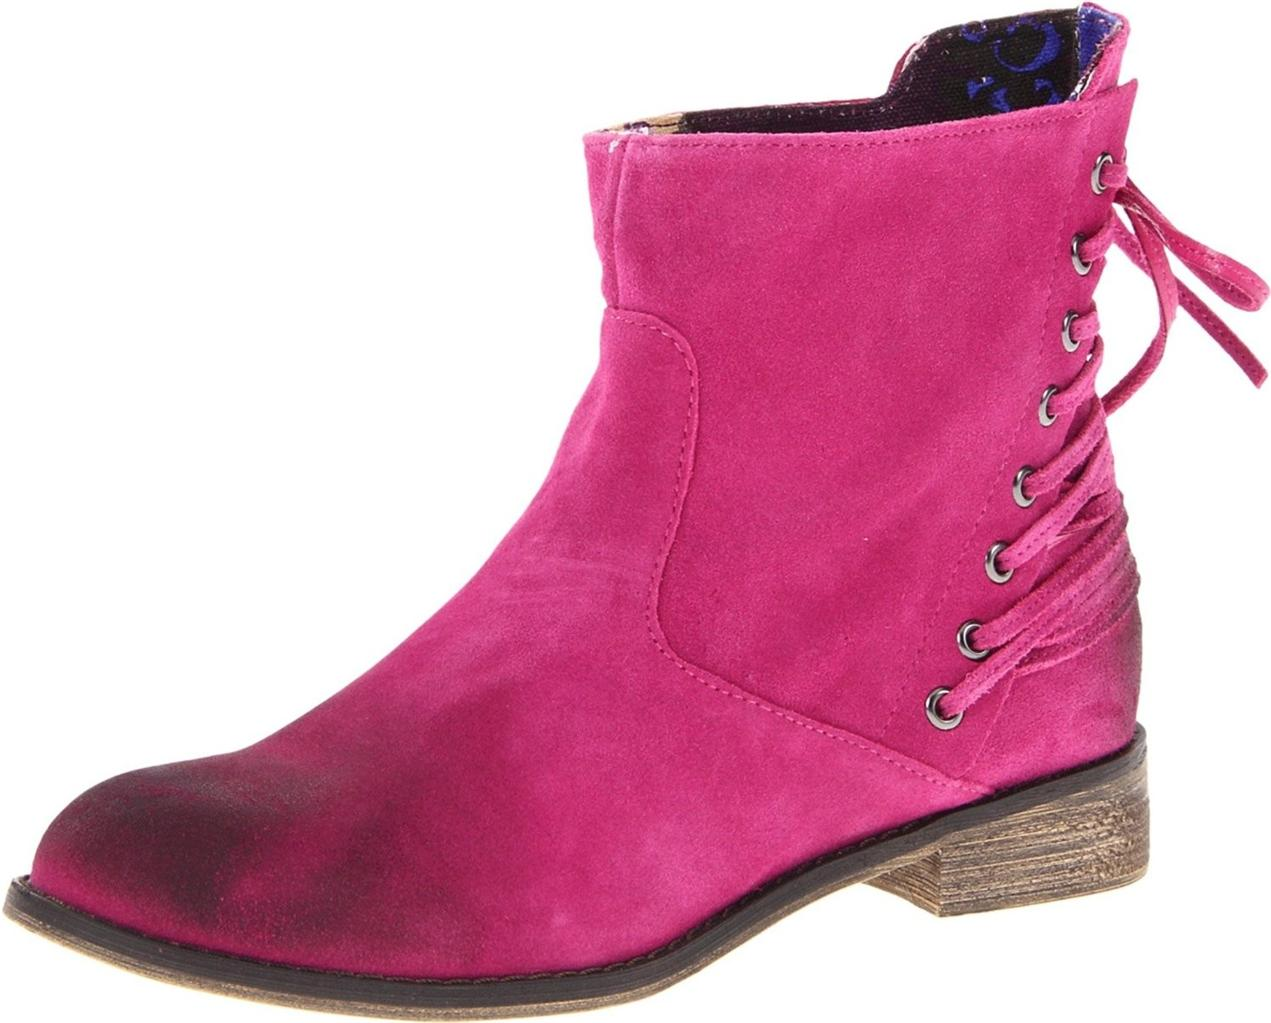 Free shipping on women's booties at oldsmobileclub.ga Shop all types of ankle boots, chelsea boots, and short boots for women from the best brands including Steve Madden, Sam Edelman, Vince Camuto and more. Totally free shipping & returns.